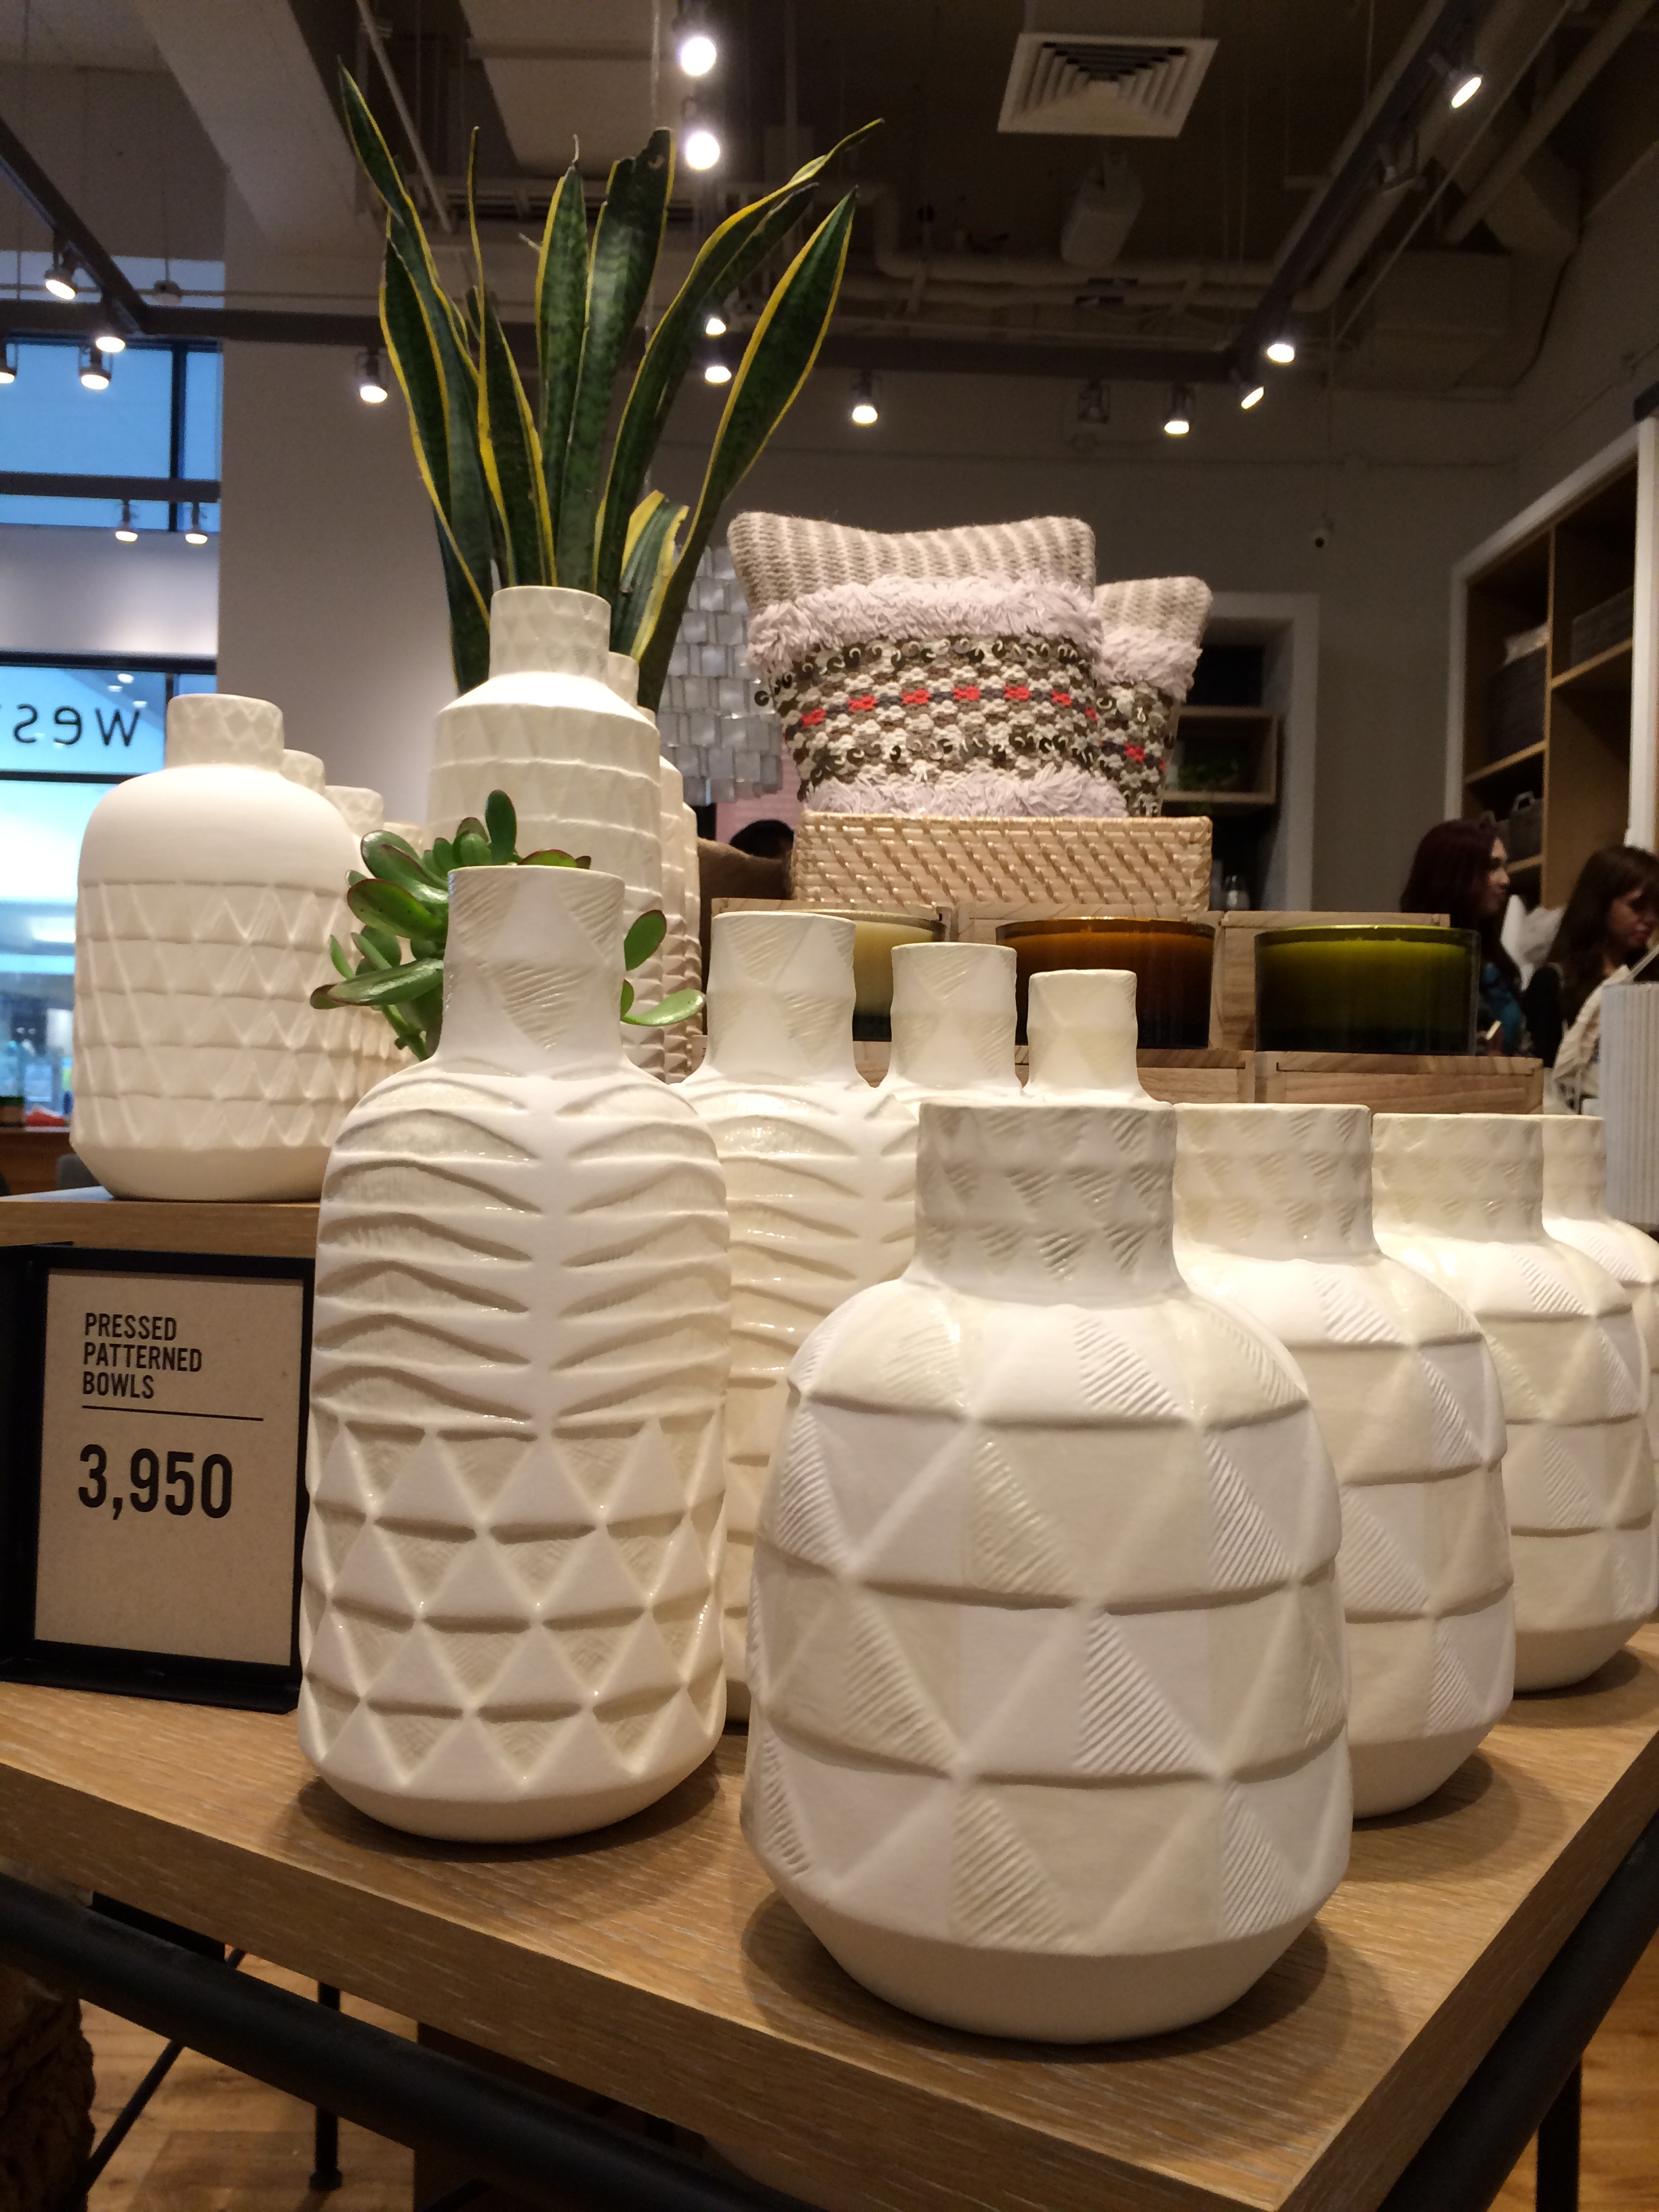 Geometry on these pressed patterned jars